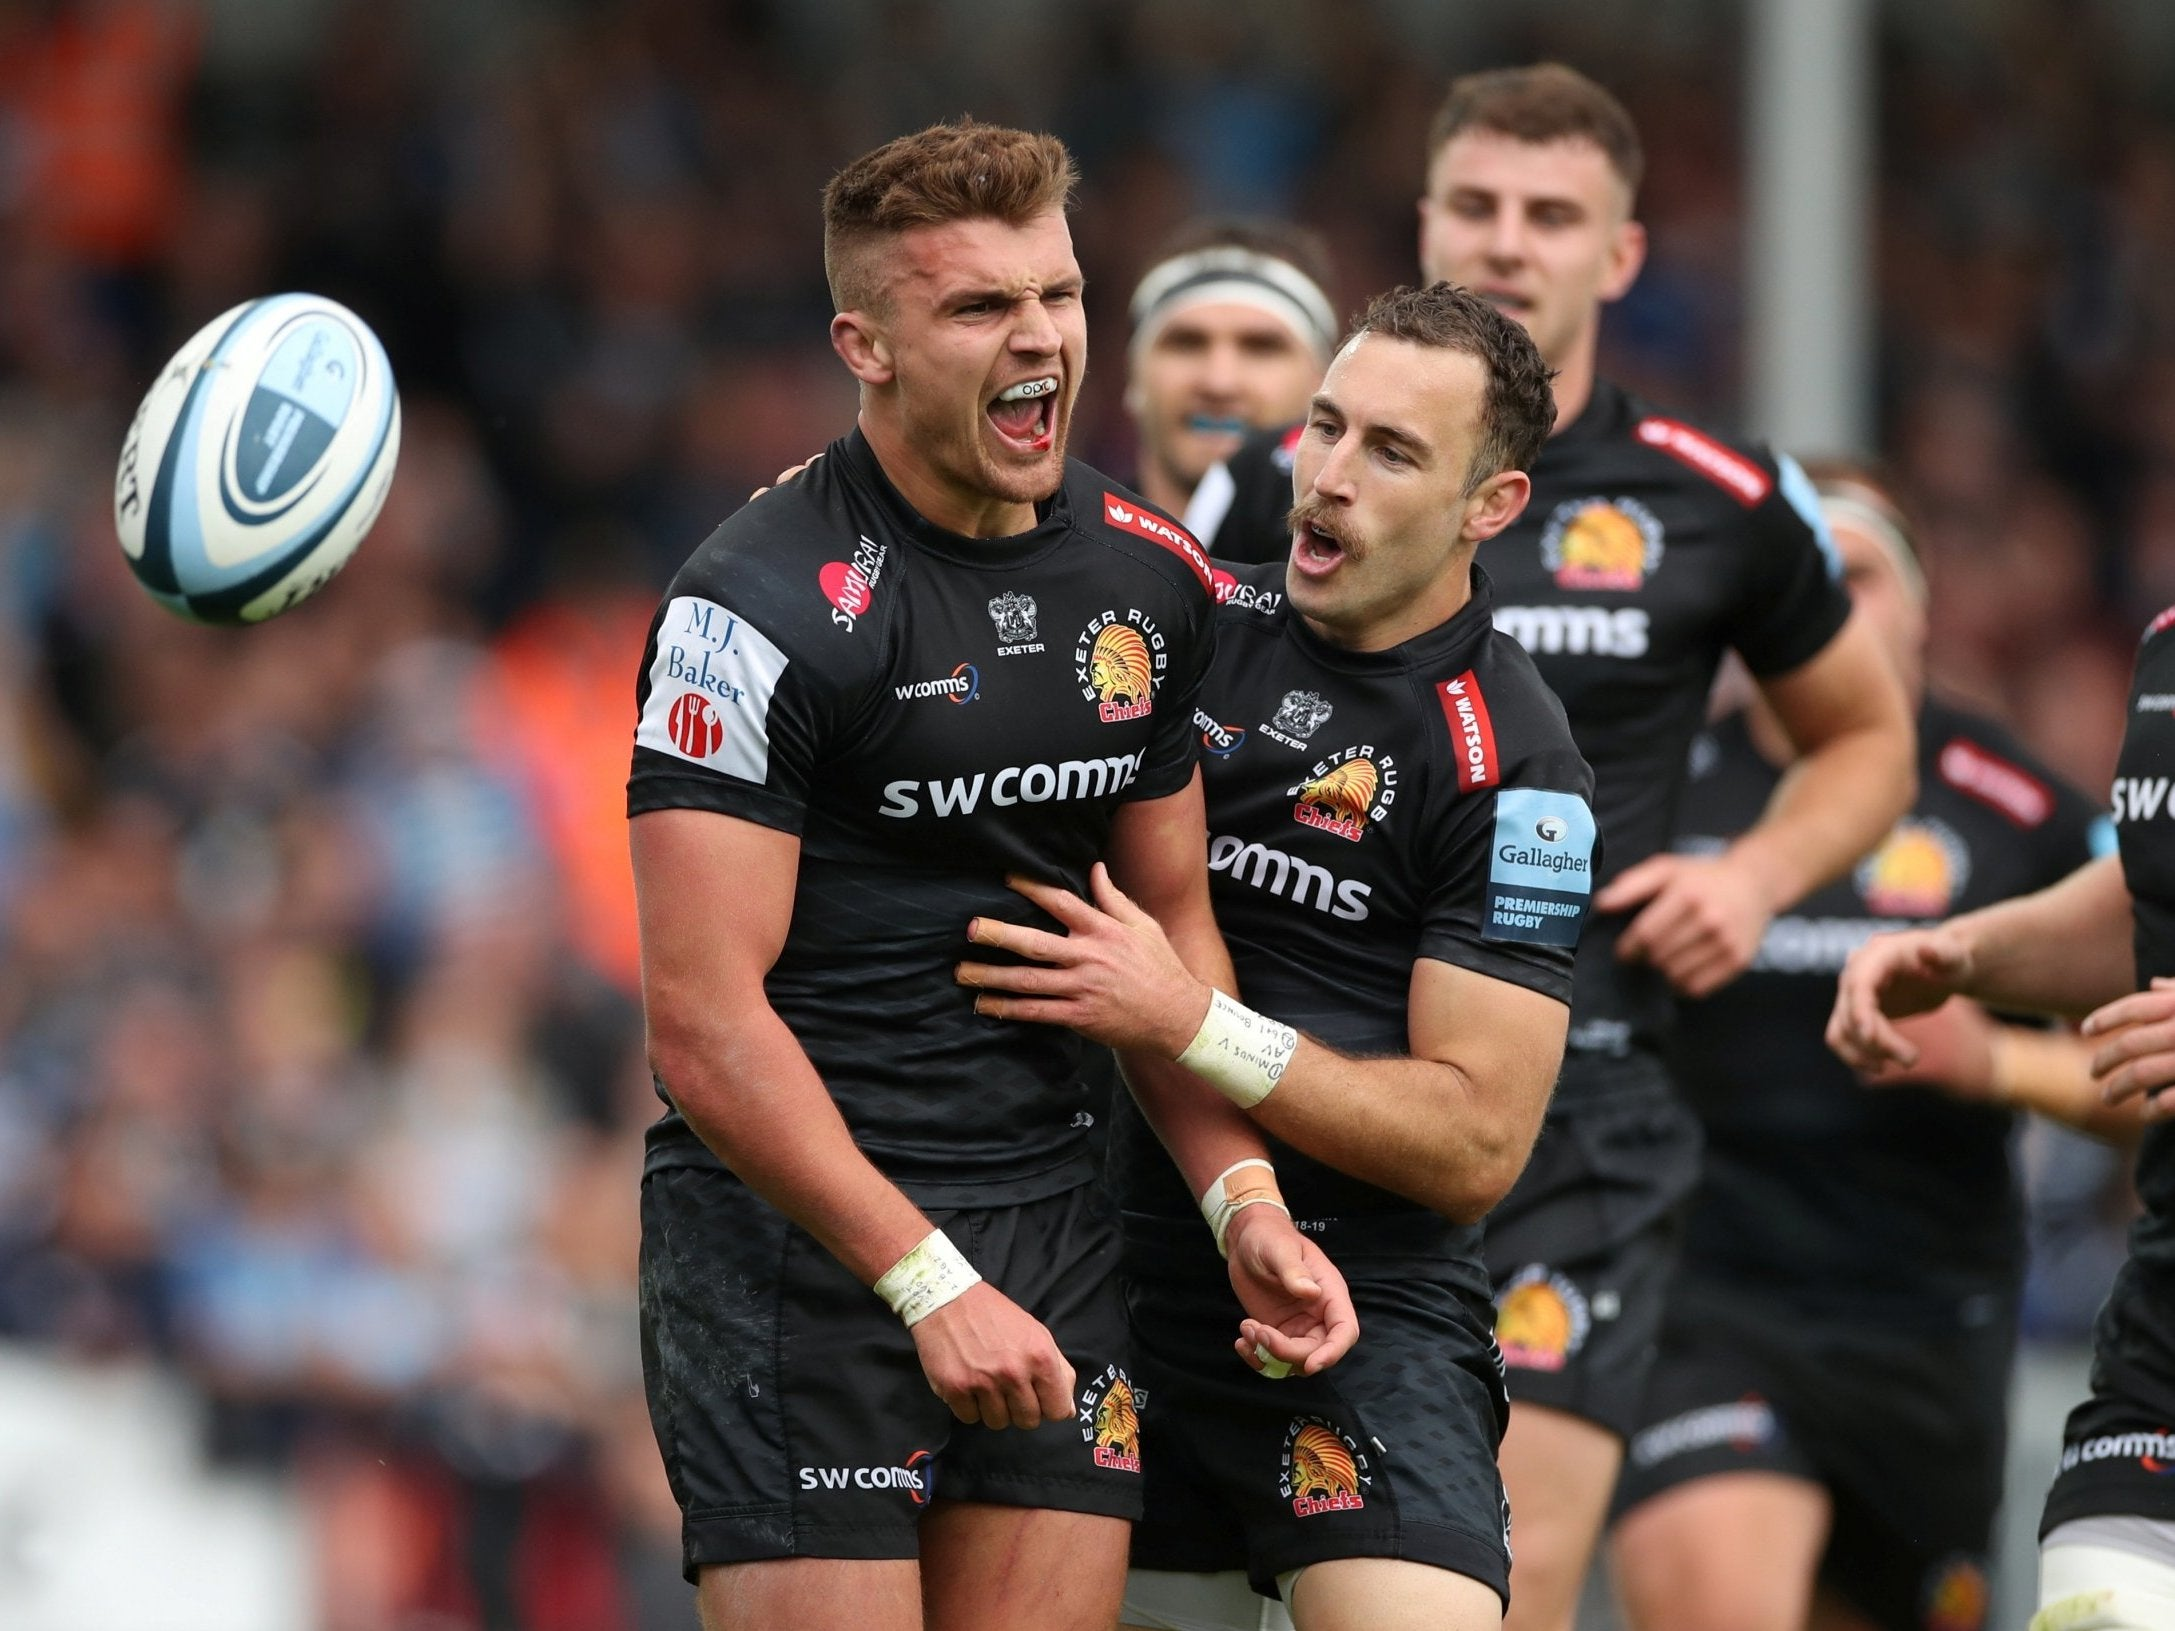 Gallagher Premiership: Exeter and Northampton brace for quickfire rematch as Bath pip Sale to sixth